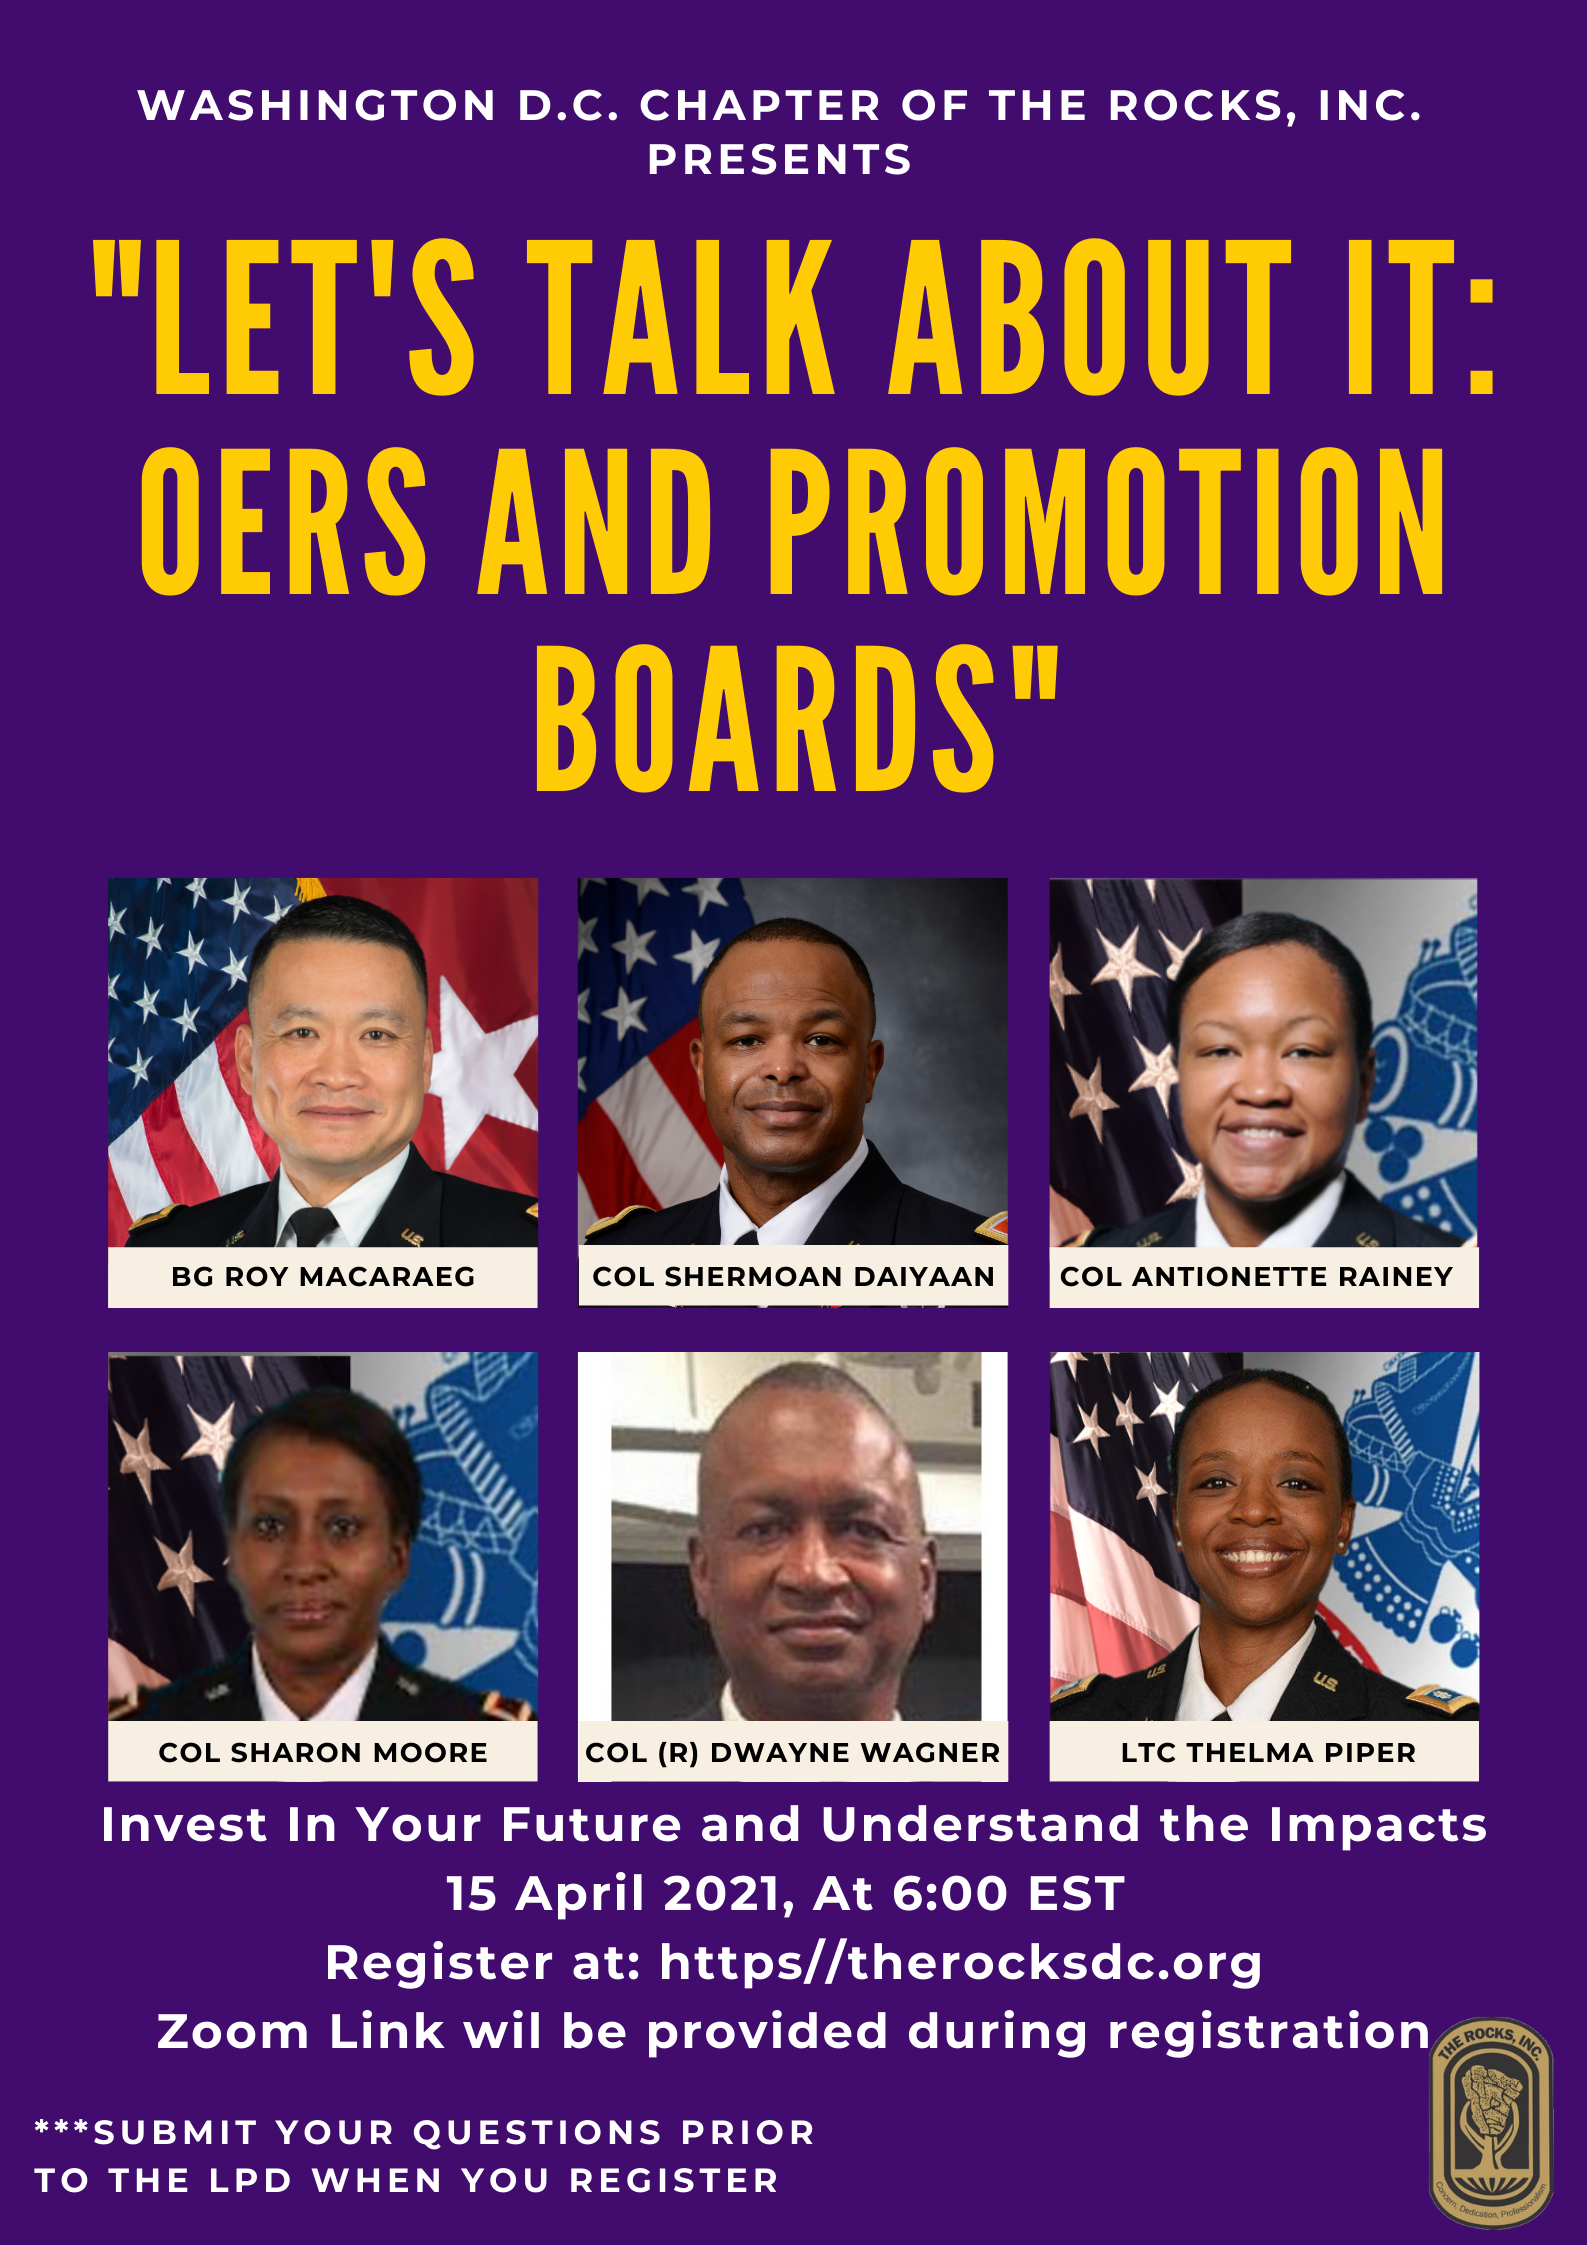 Let's Talk About It: OERS and Promotion Boards